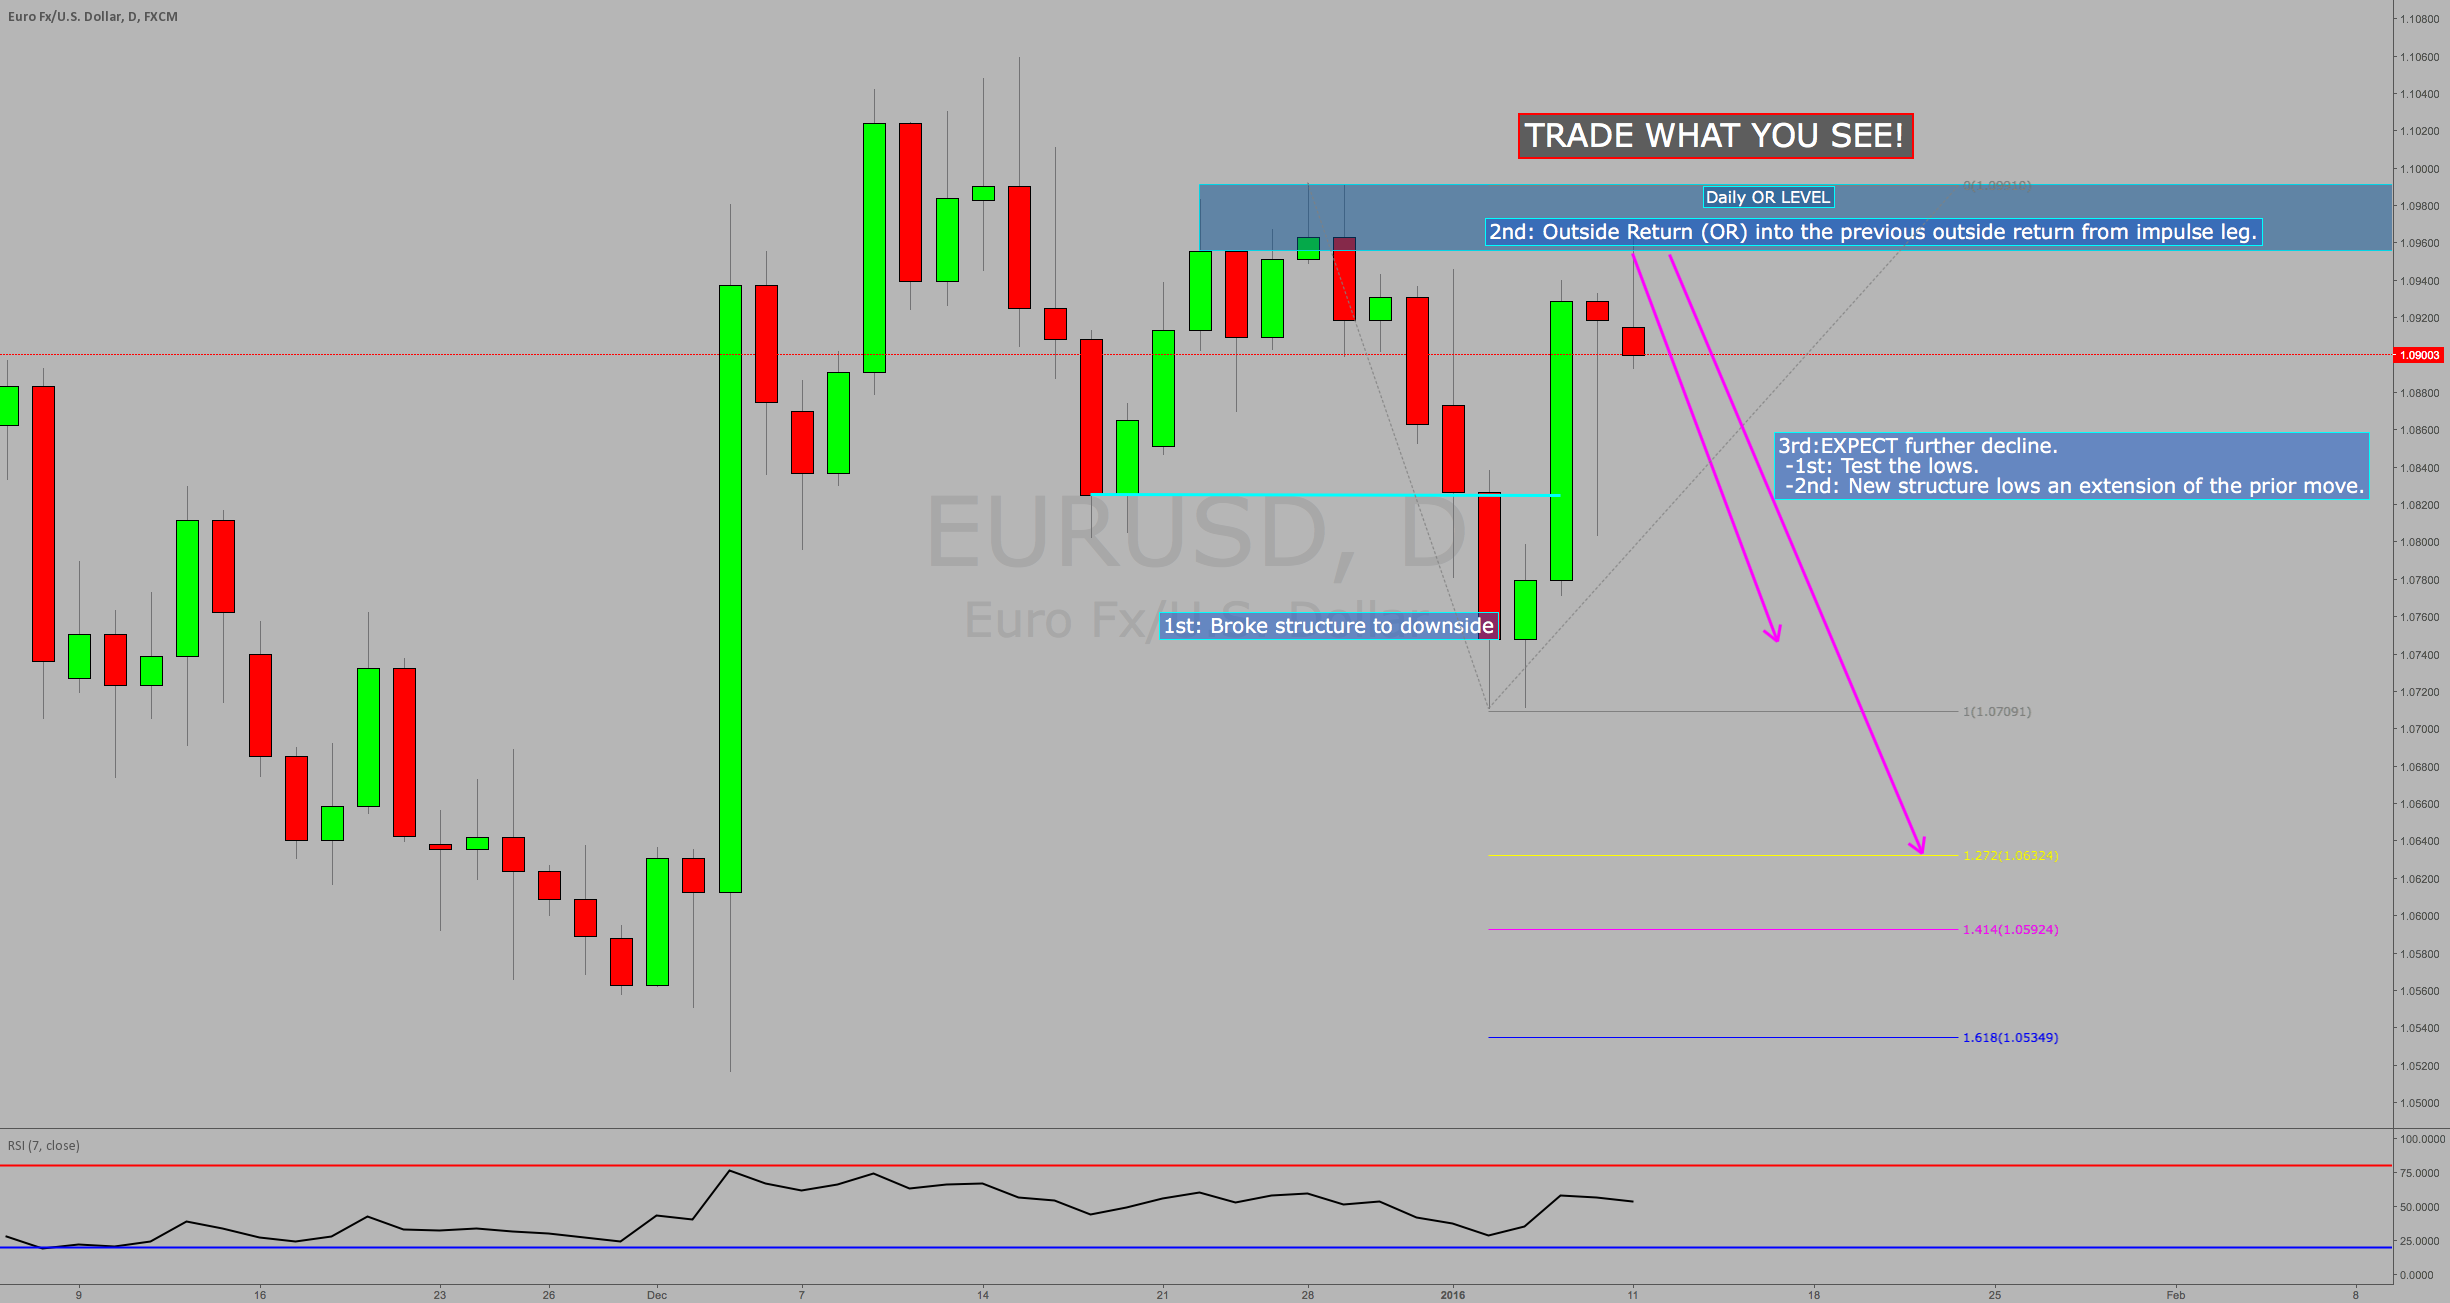 TRADE WHAT YOU SEE: Overall Expectation for next week on EURUSD